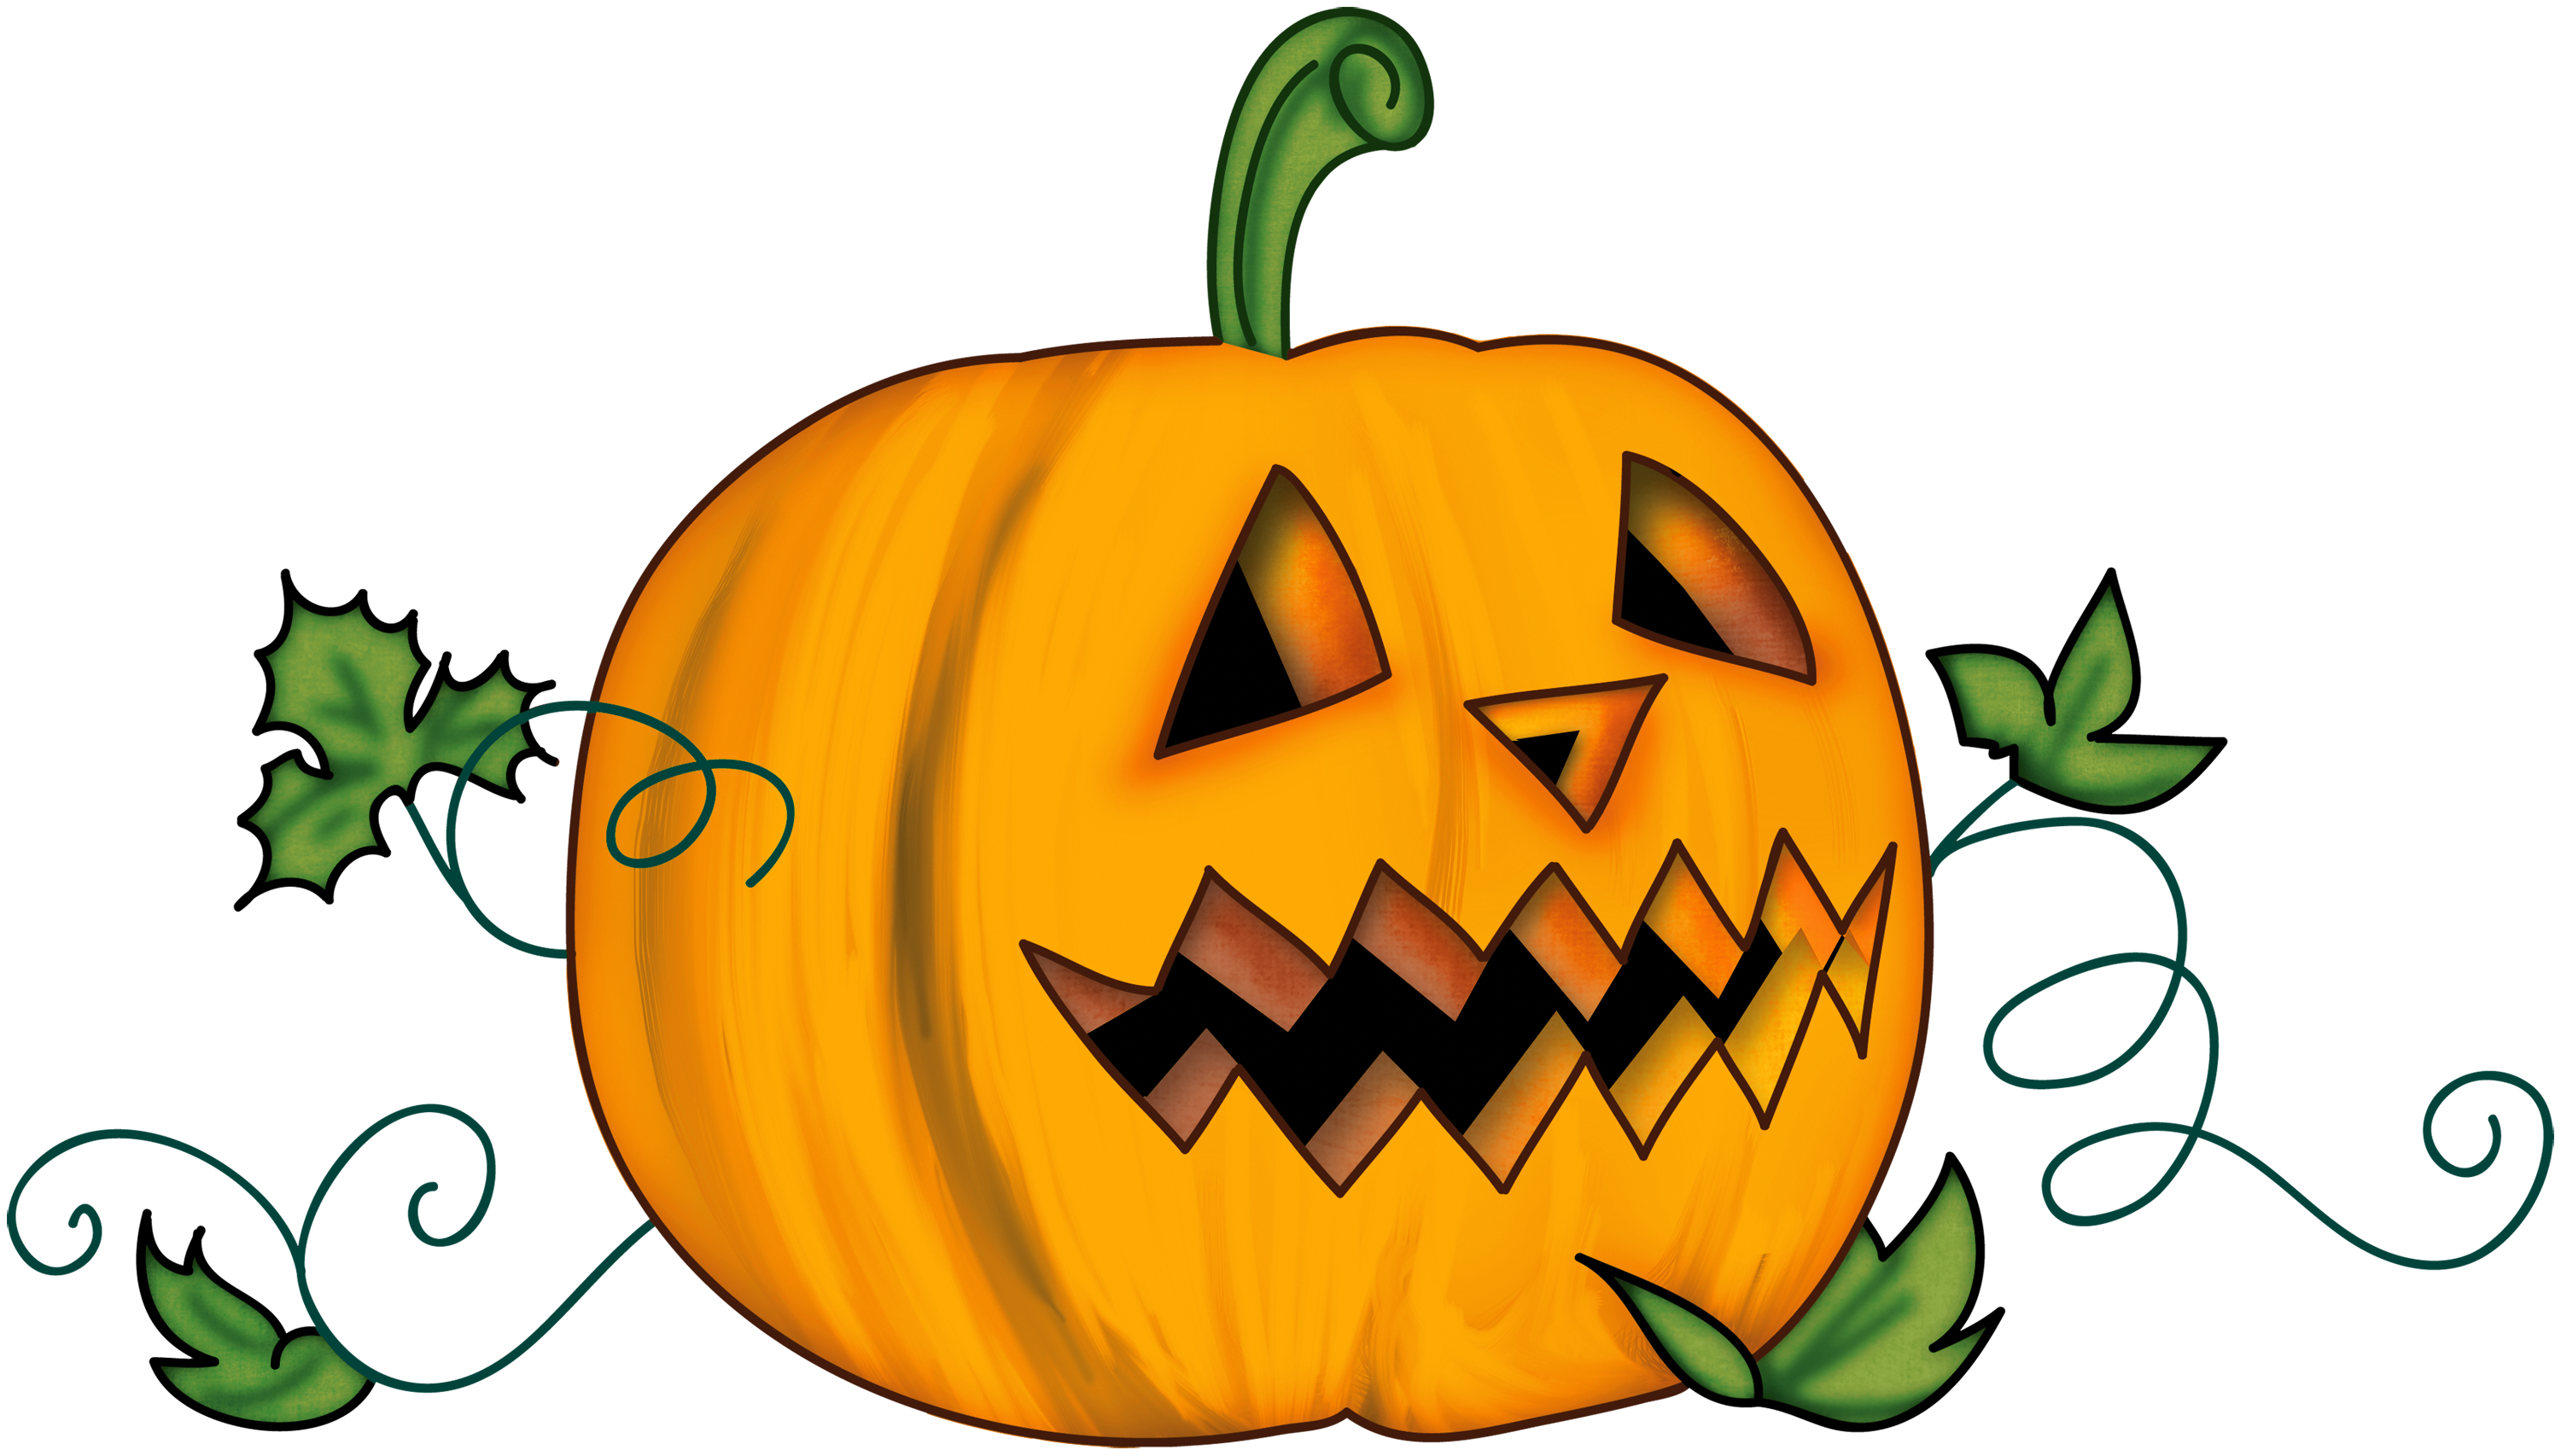 Halloween vintage scary pumpkin clipart clipart transparent stock Free Pumpkin Clipart at GetDrawings.com | Free for personal use Free ... clipart transparent stock